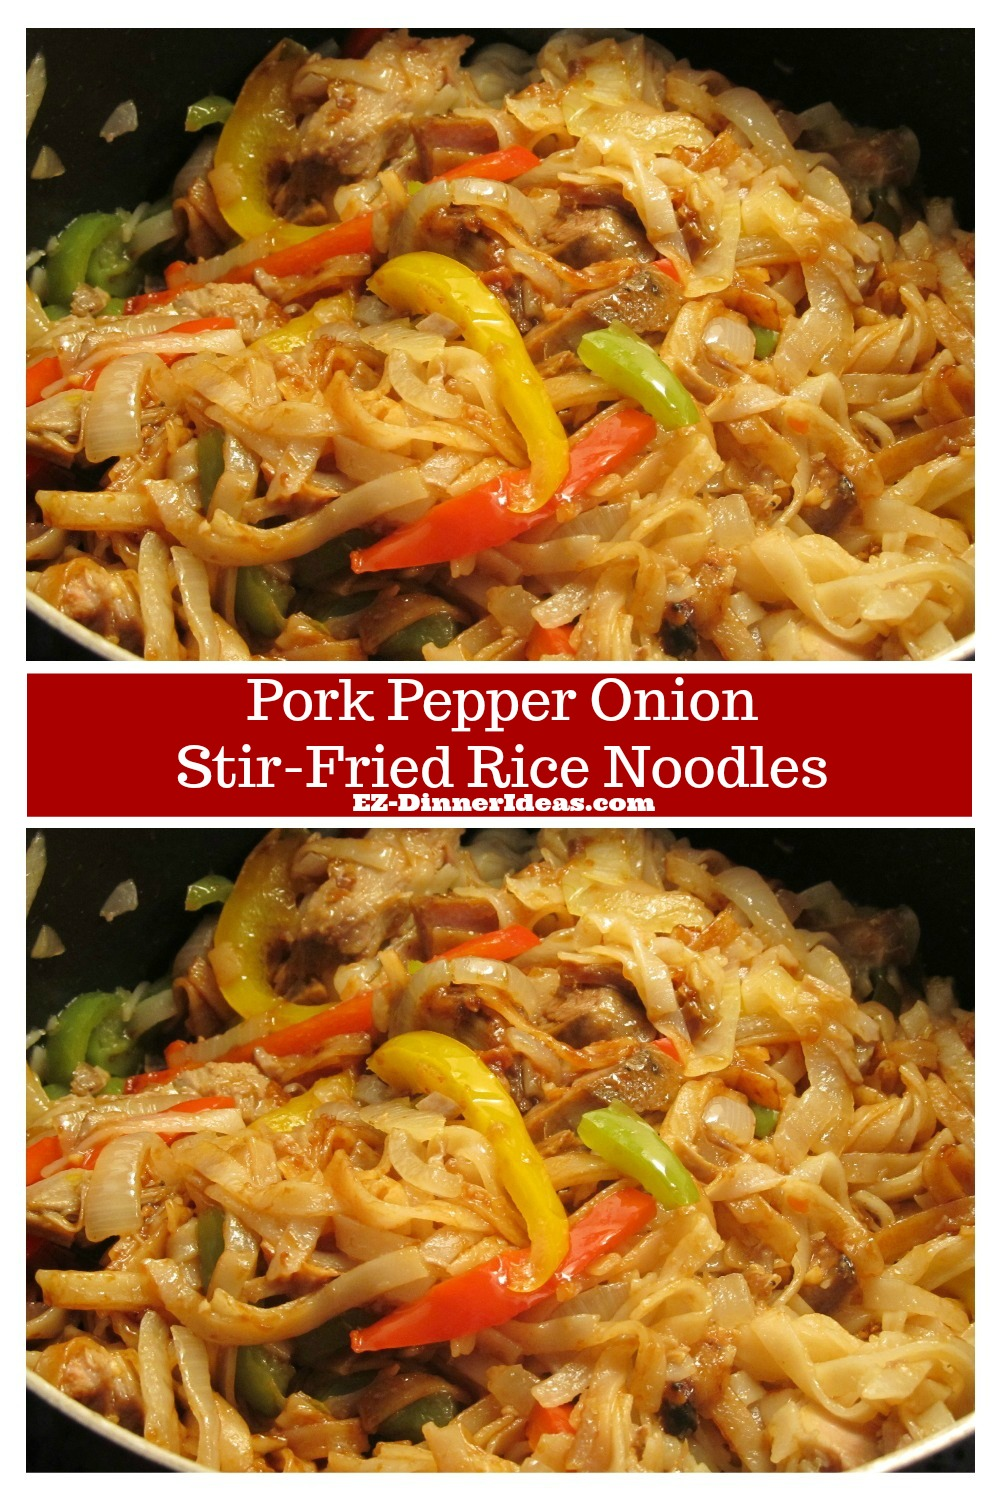 This pork and noodles recipe is not only yummy, but also very versatile.  You can use leftover or fresh pork.  Or totally skip it to make it a vegetarian dish.